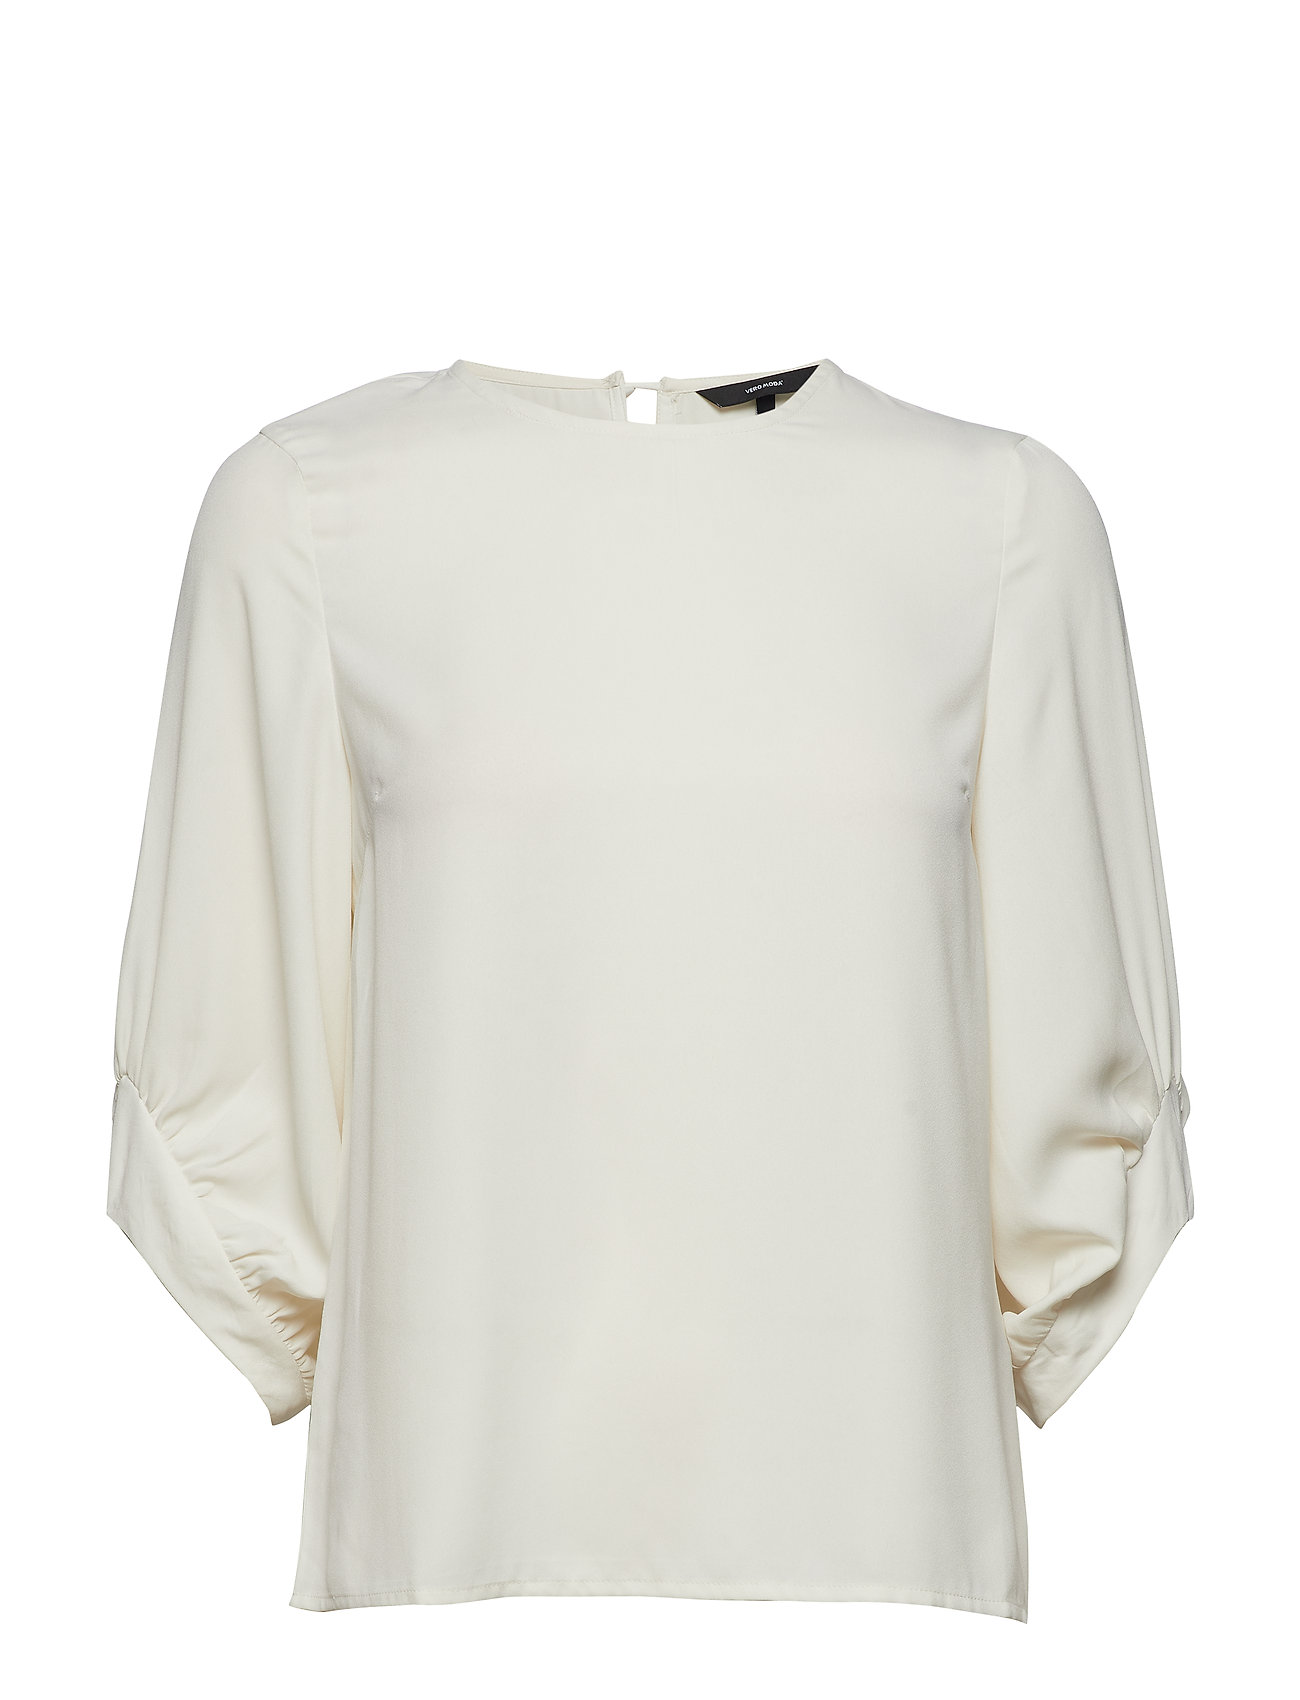 Vero Moda VMCAROLA 3/4 TOP WVN - BIRCH